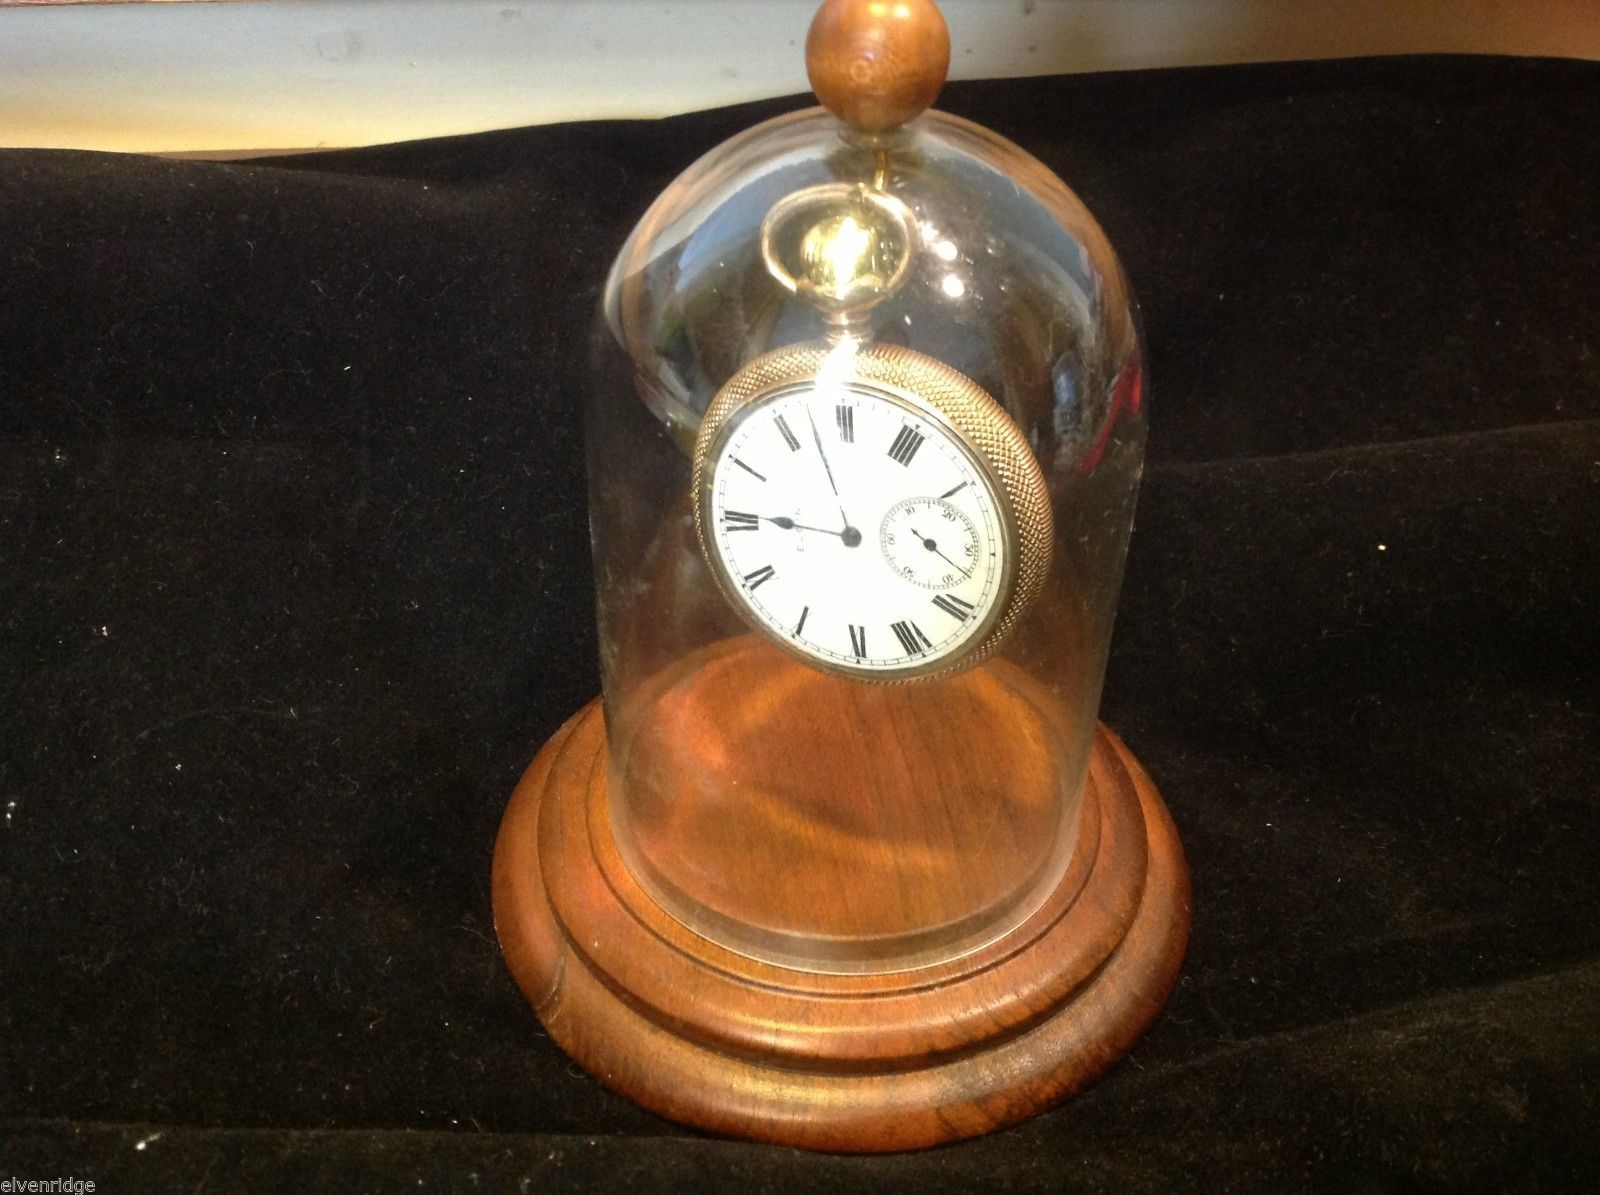 Antique Elgin Pocket watch gold case engraved from estate in display glass globe